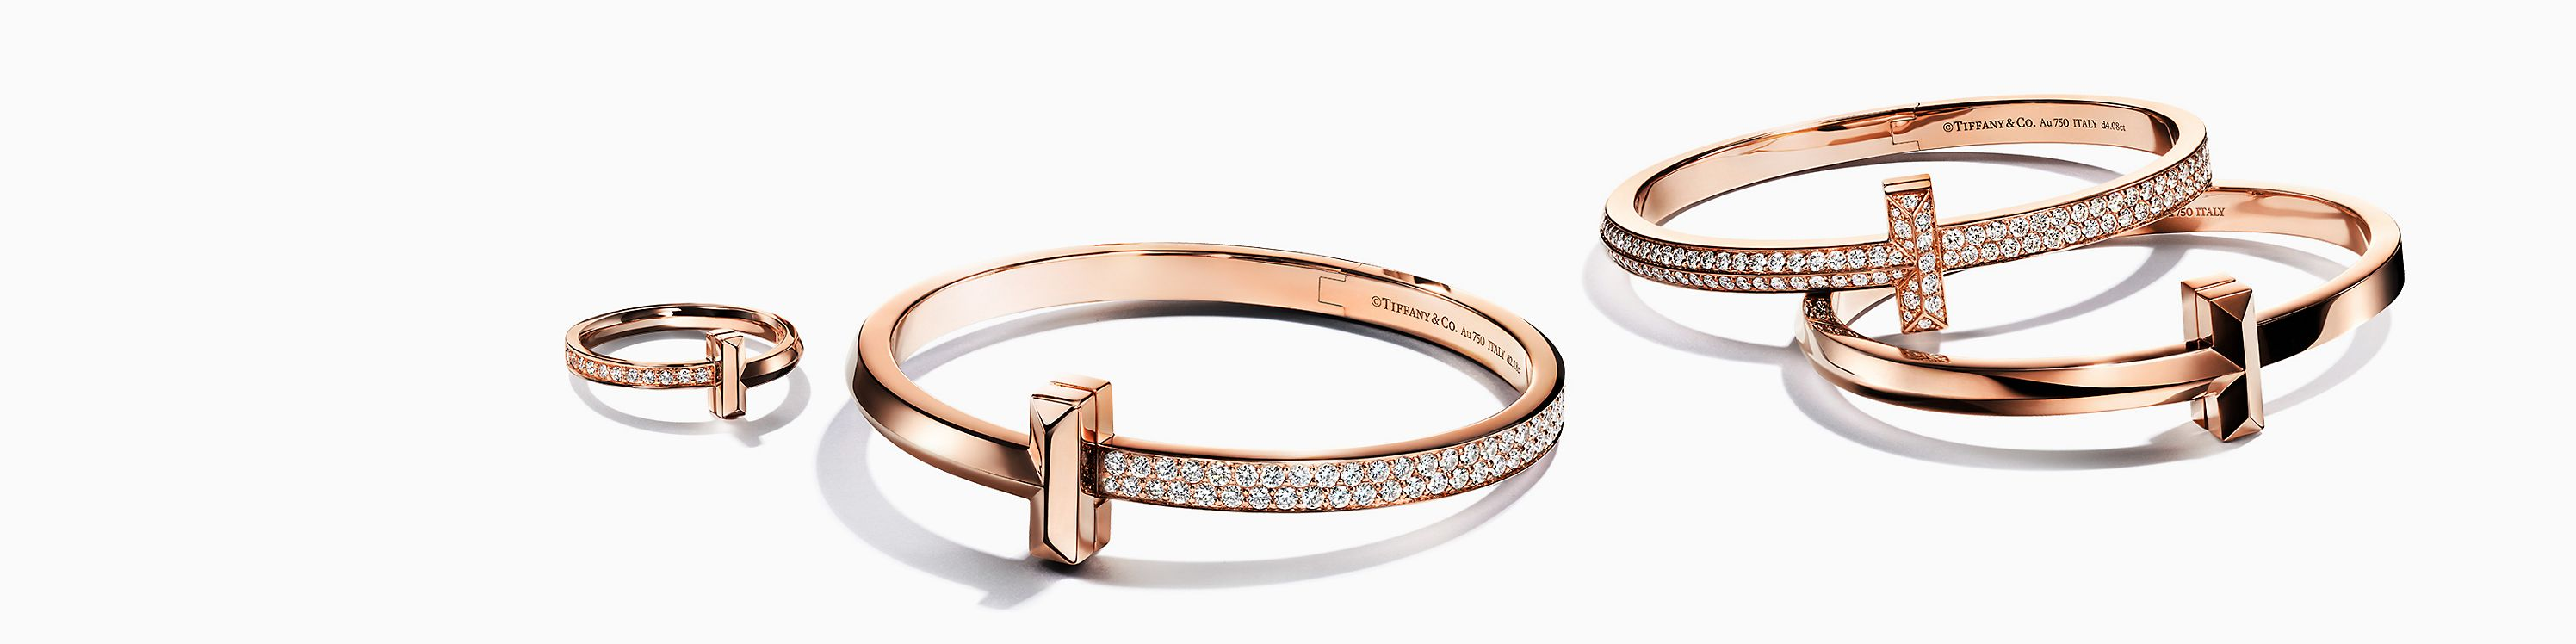 New Tiffany & Co. Jewelry